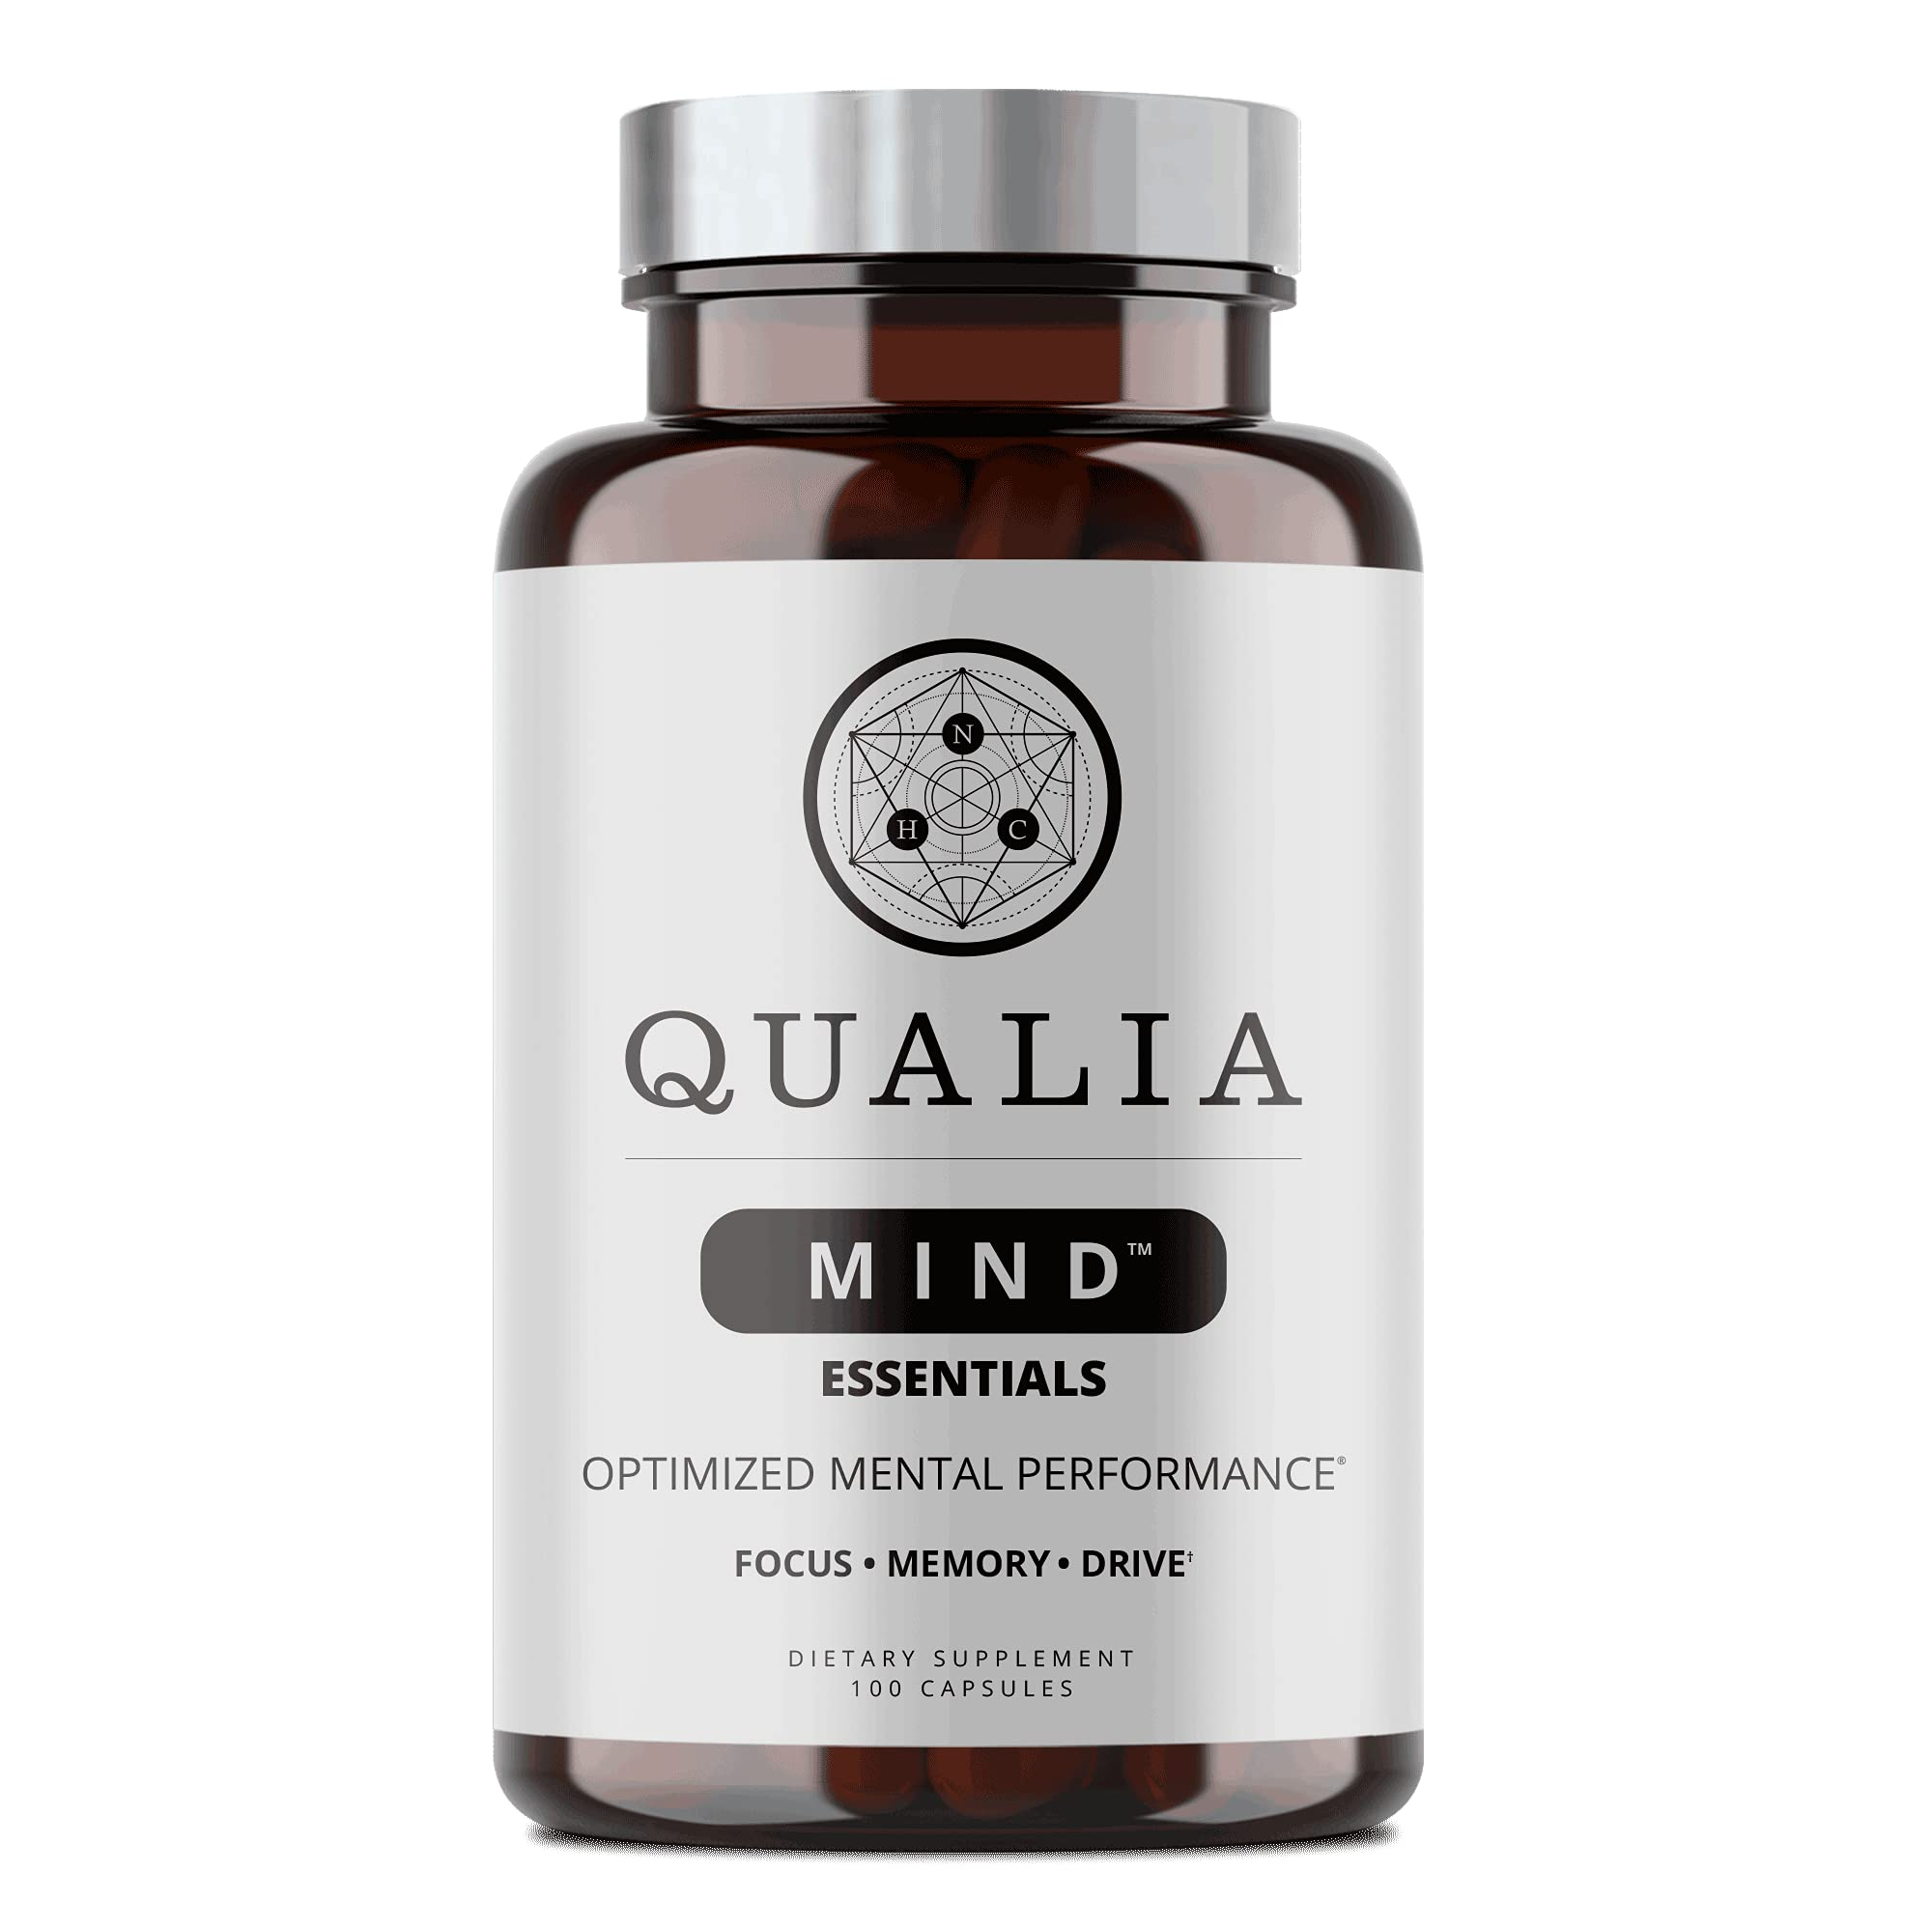 Qualia Mind Essentials Nootropics 100ct   The Brain Supplement for Focus, Supporting Memory, Mental Clarity, Energy, Reasoning, and Concentration with Ginkgo biloba, Bacopa monnieri, Celastrus